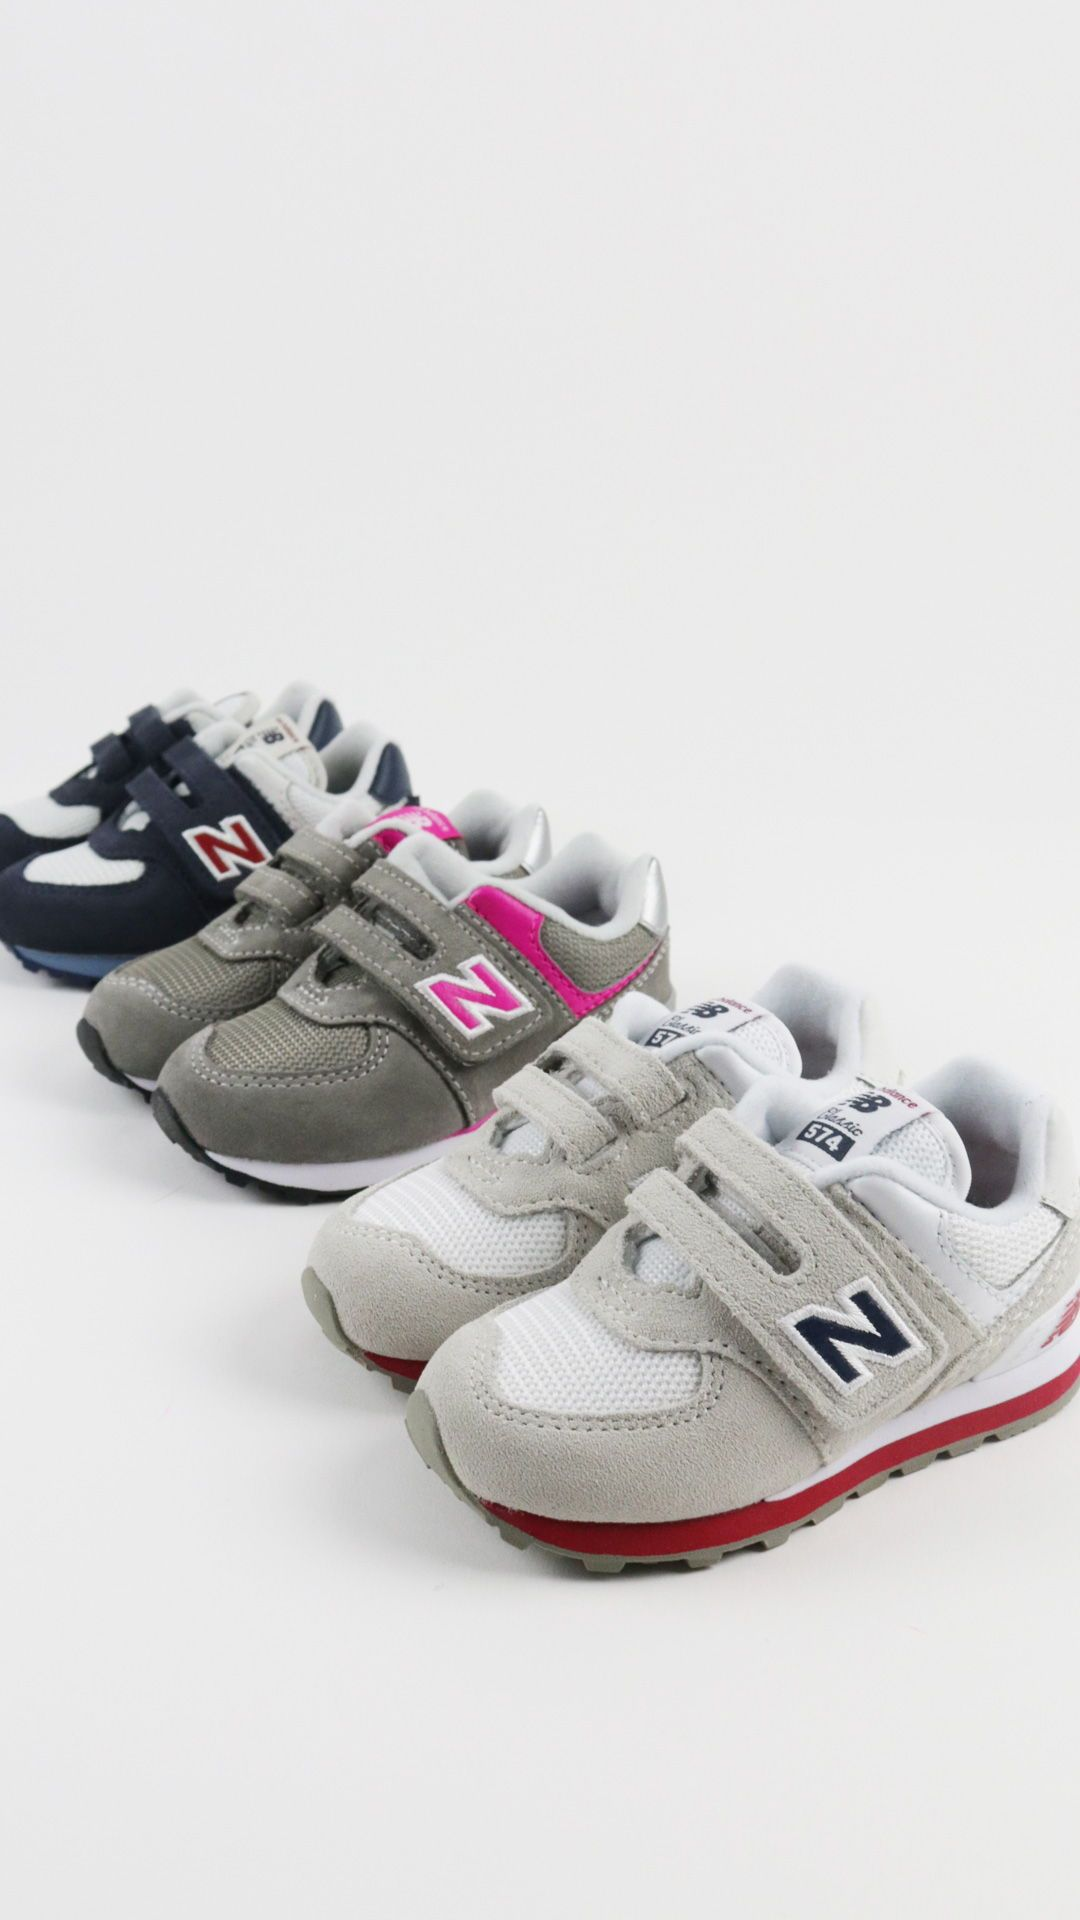 b97af7ee9c71 new balance Our Baby